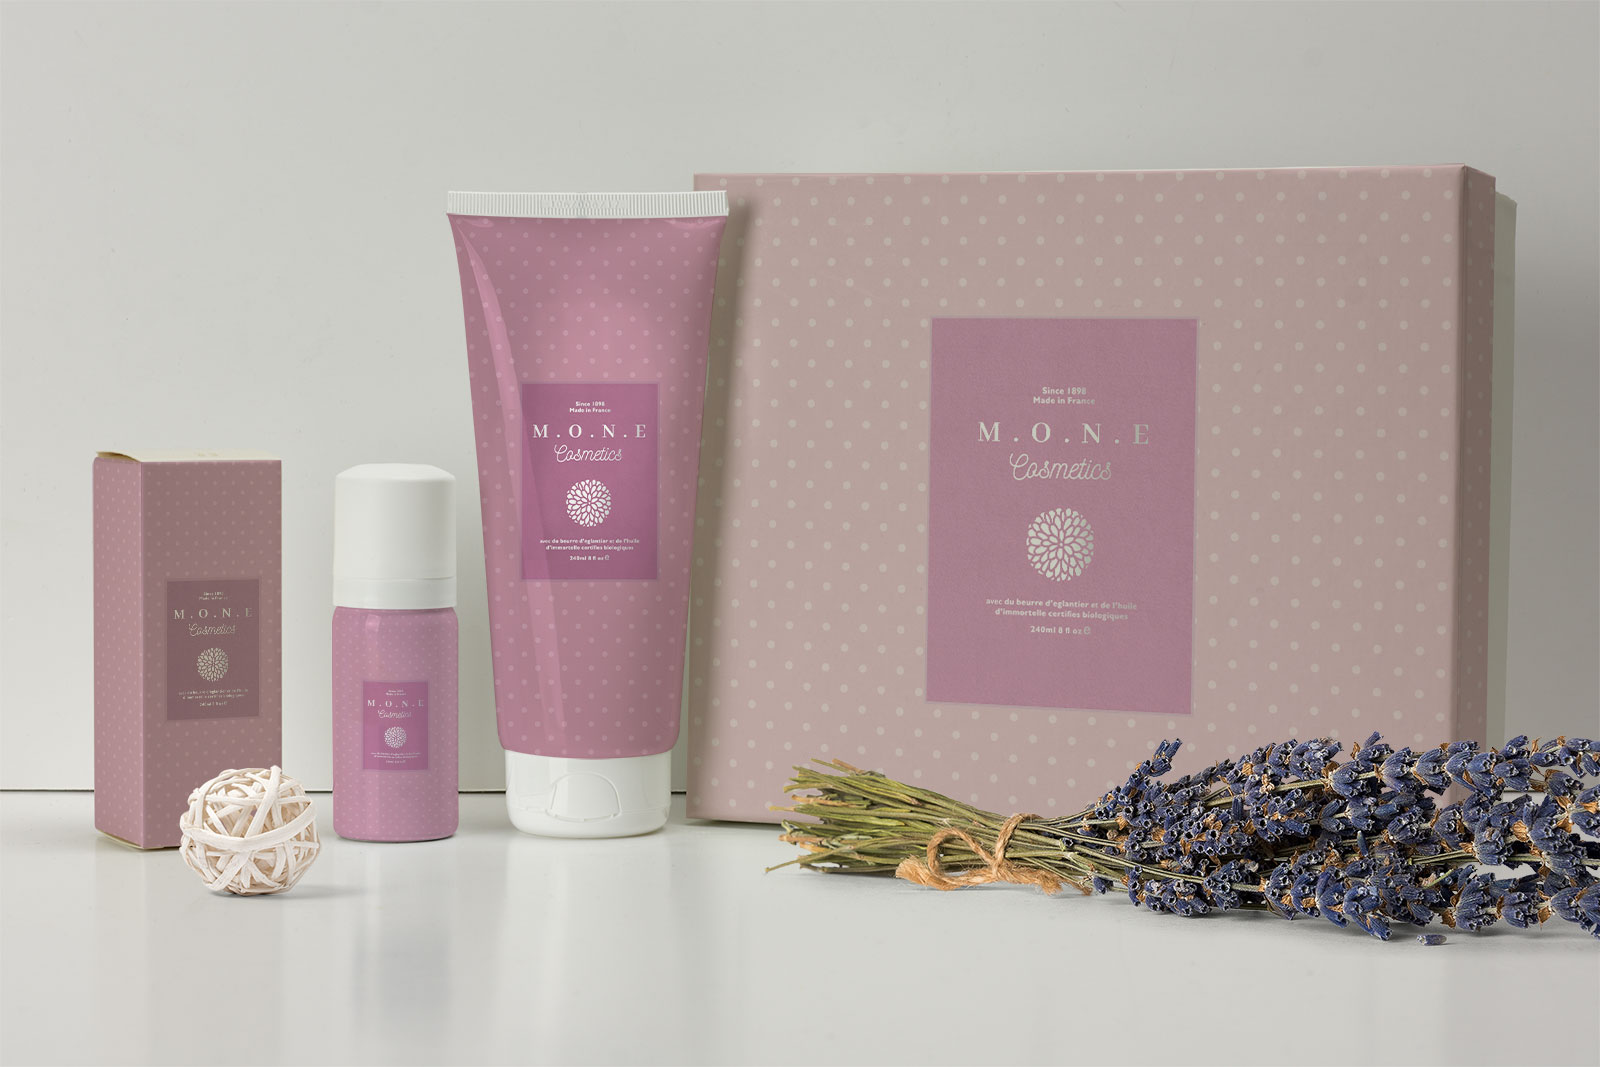 Free-Premium-Cosmetics-Cream-Lotion-Packaging-Mockup-Pack